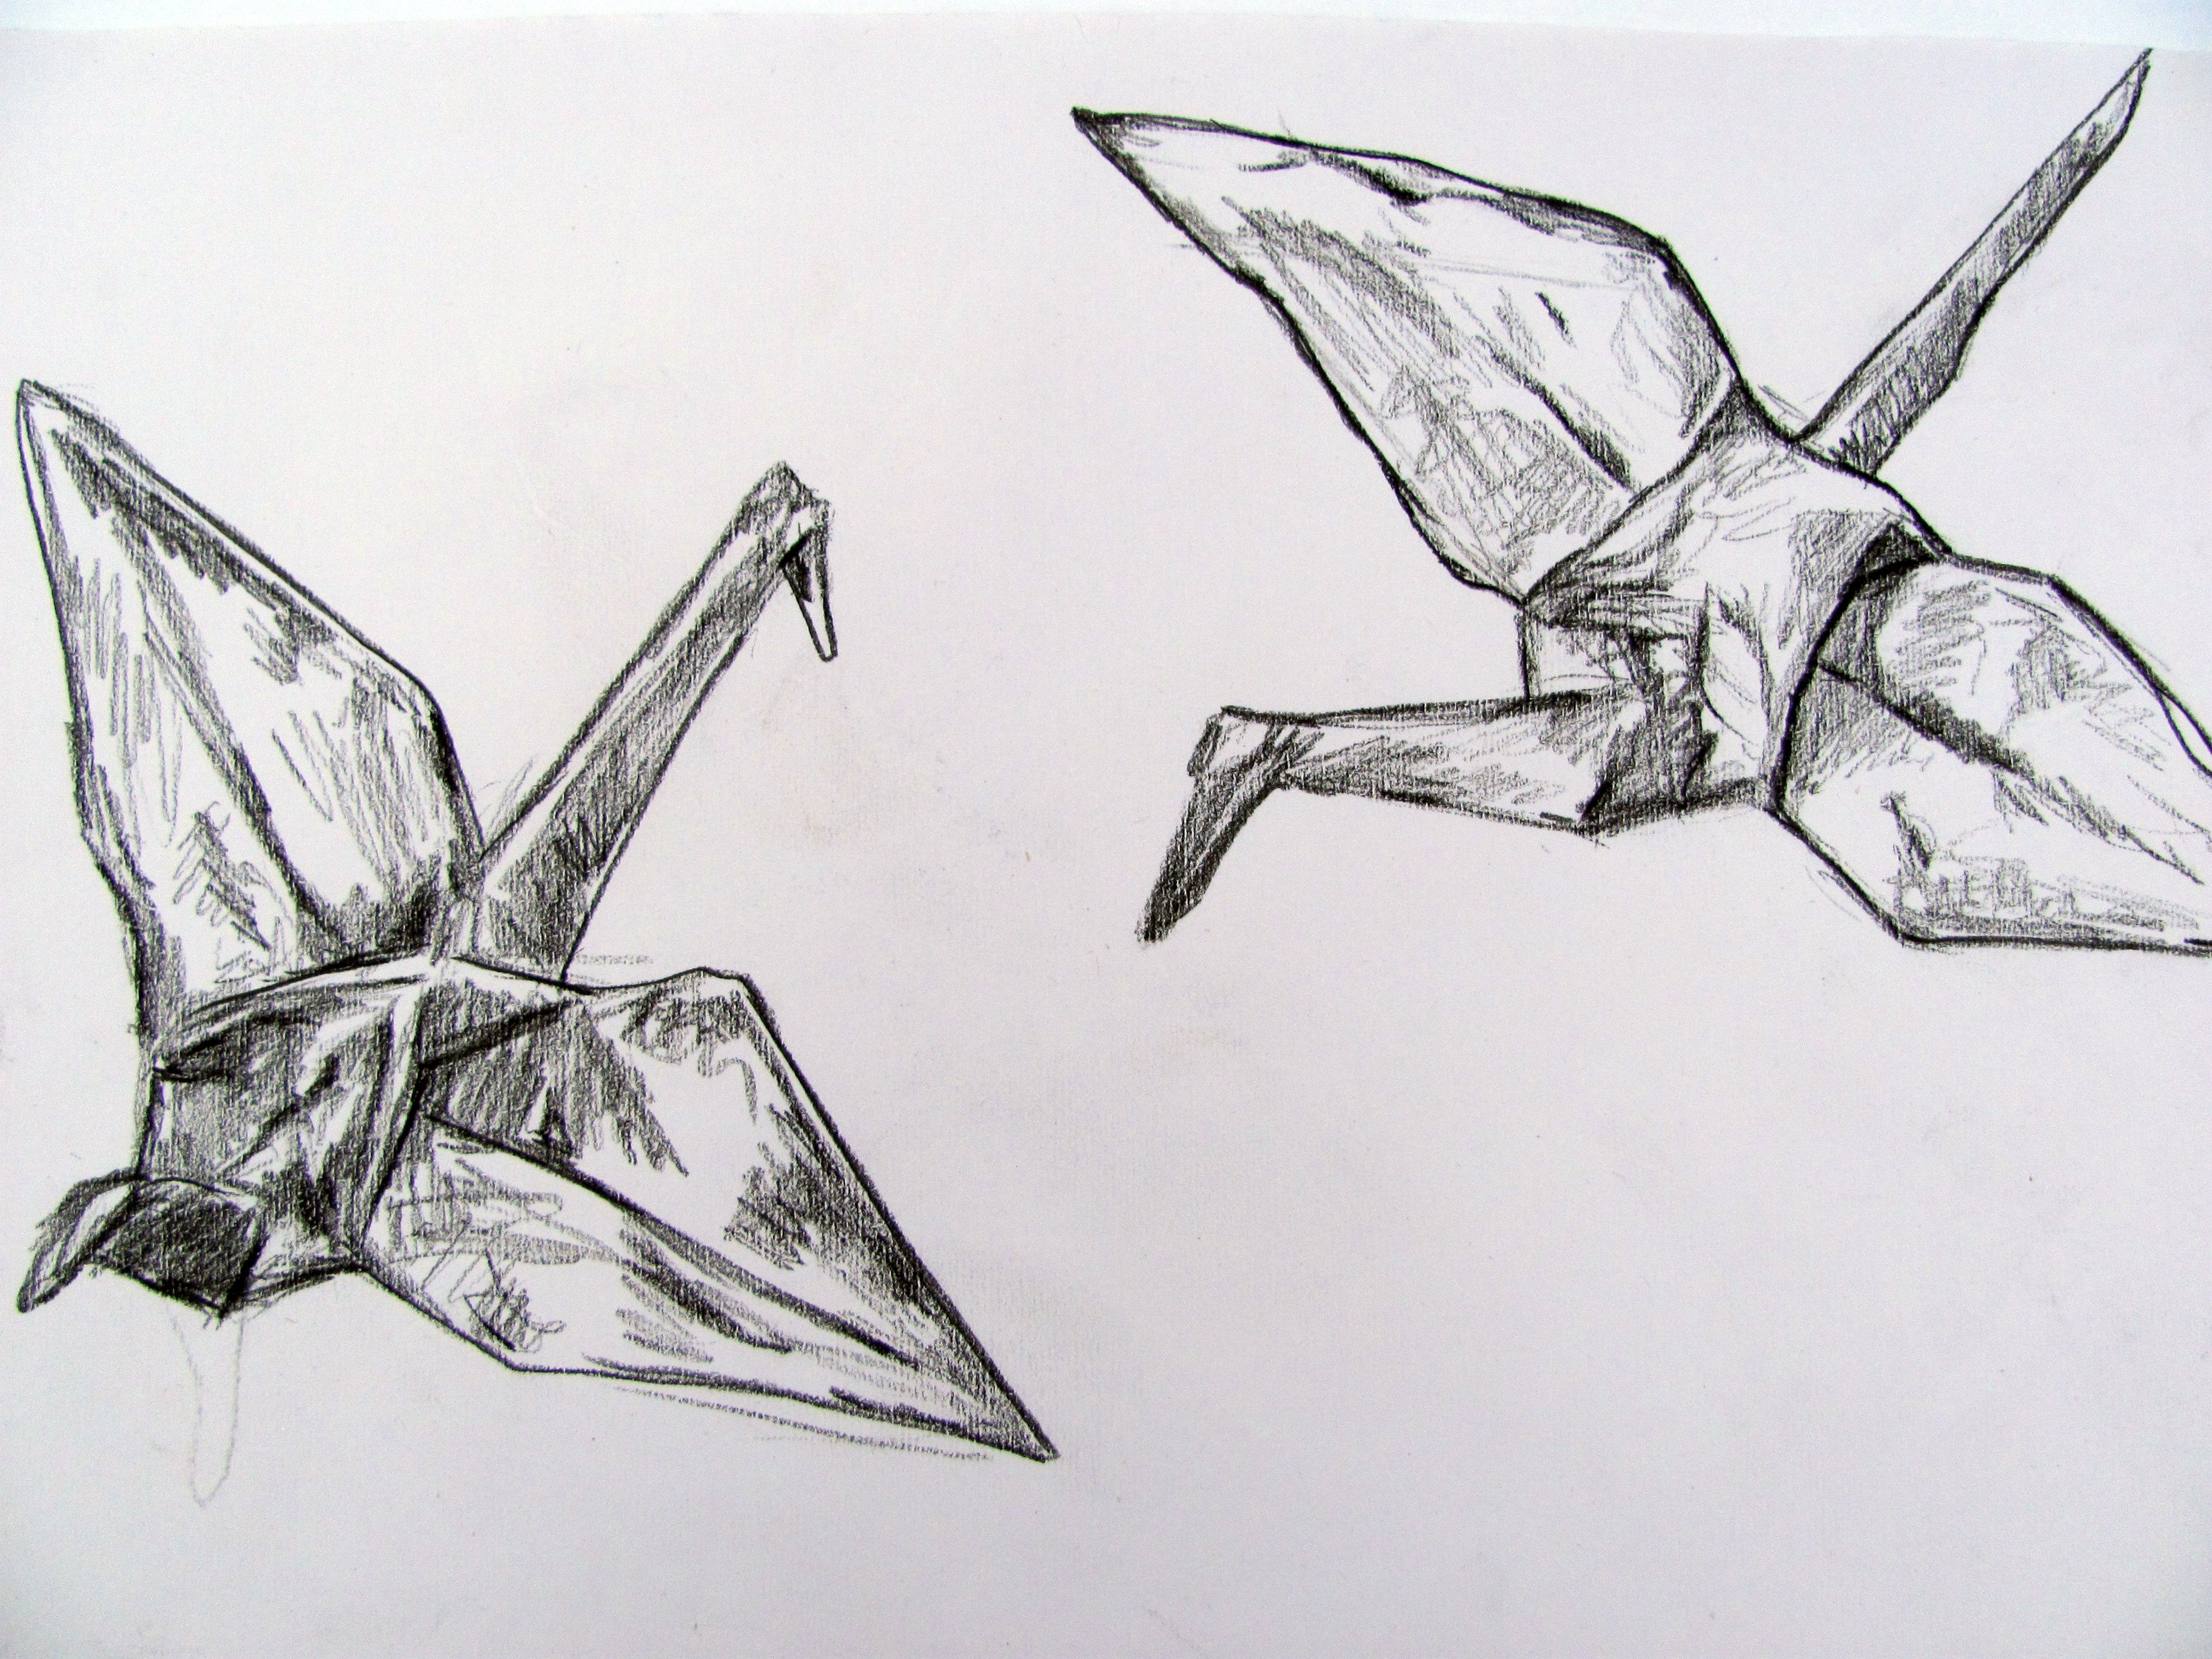 paper crane drawing alice thatcher 2012 origami drawing